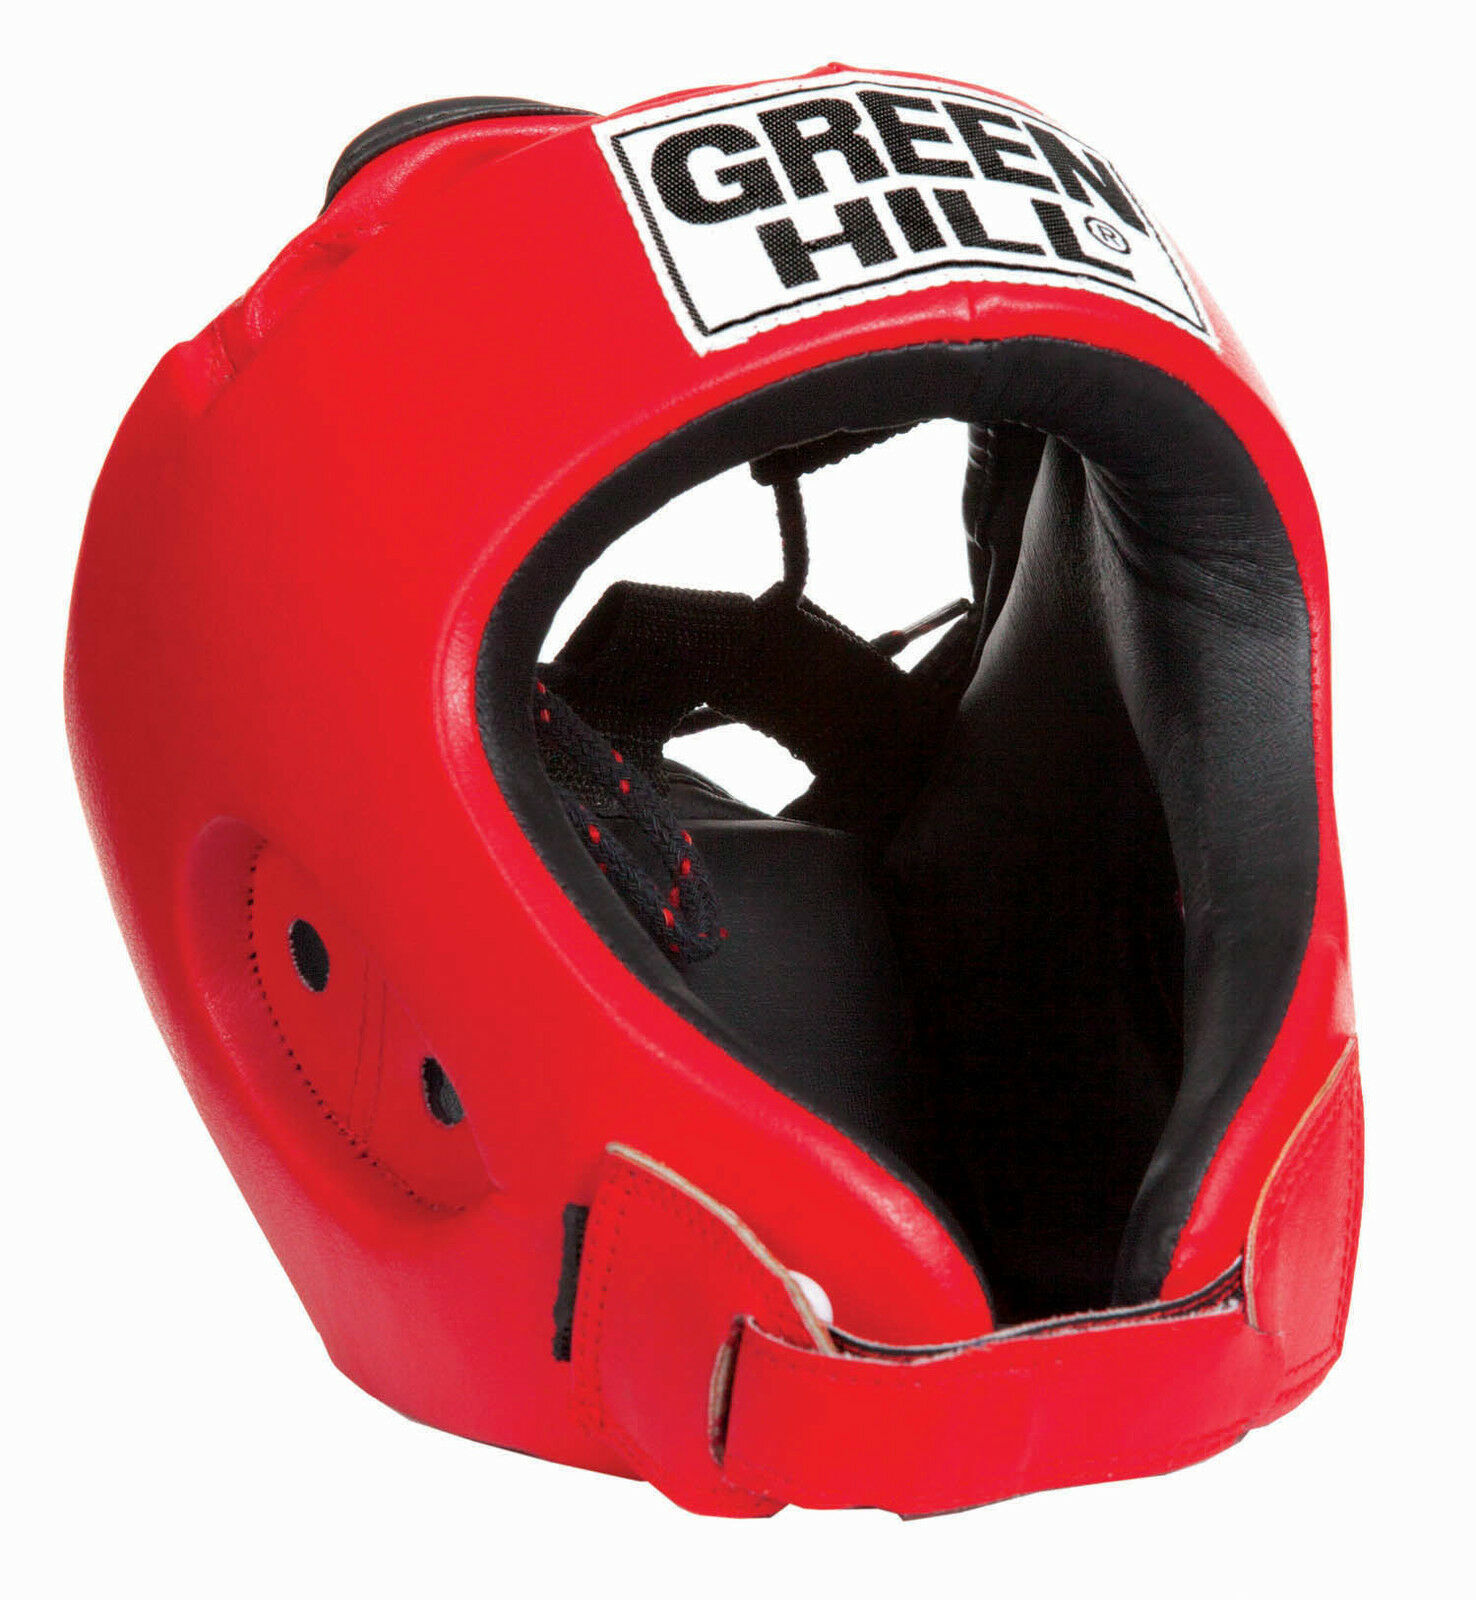 Greenhill boxe casque de protection/ protection/ protection/ rouage alfa training adulte & jeunes 5b1690